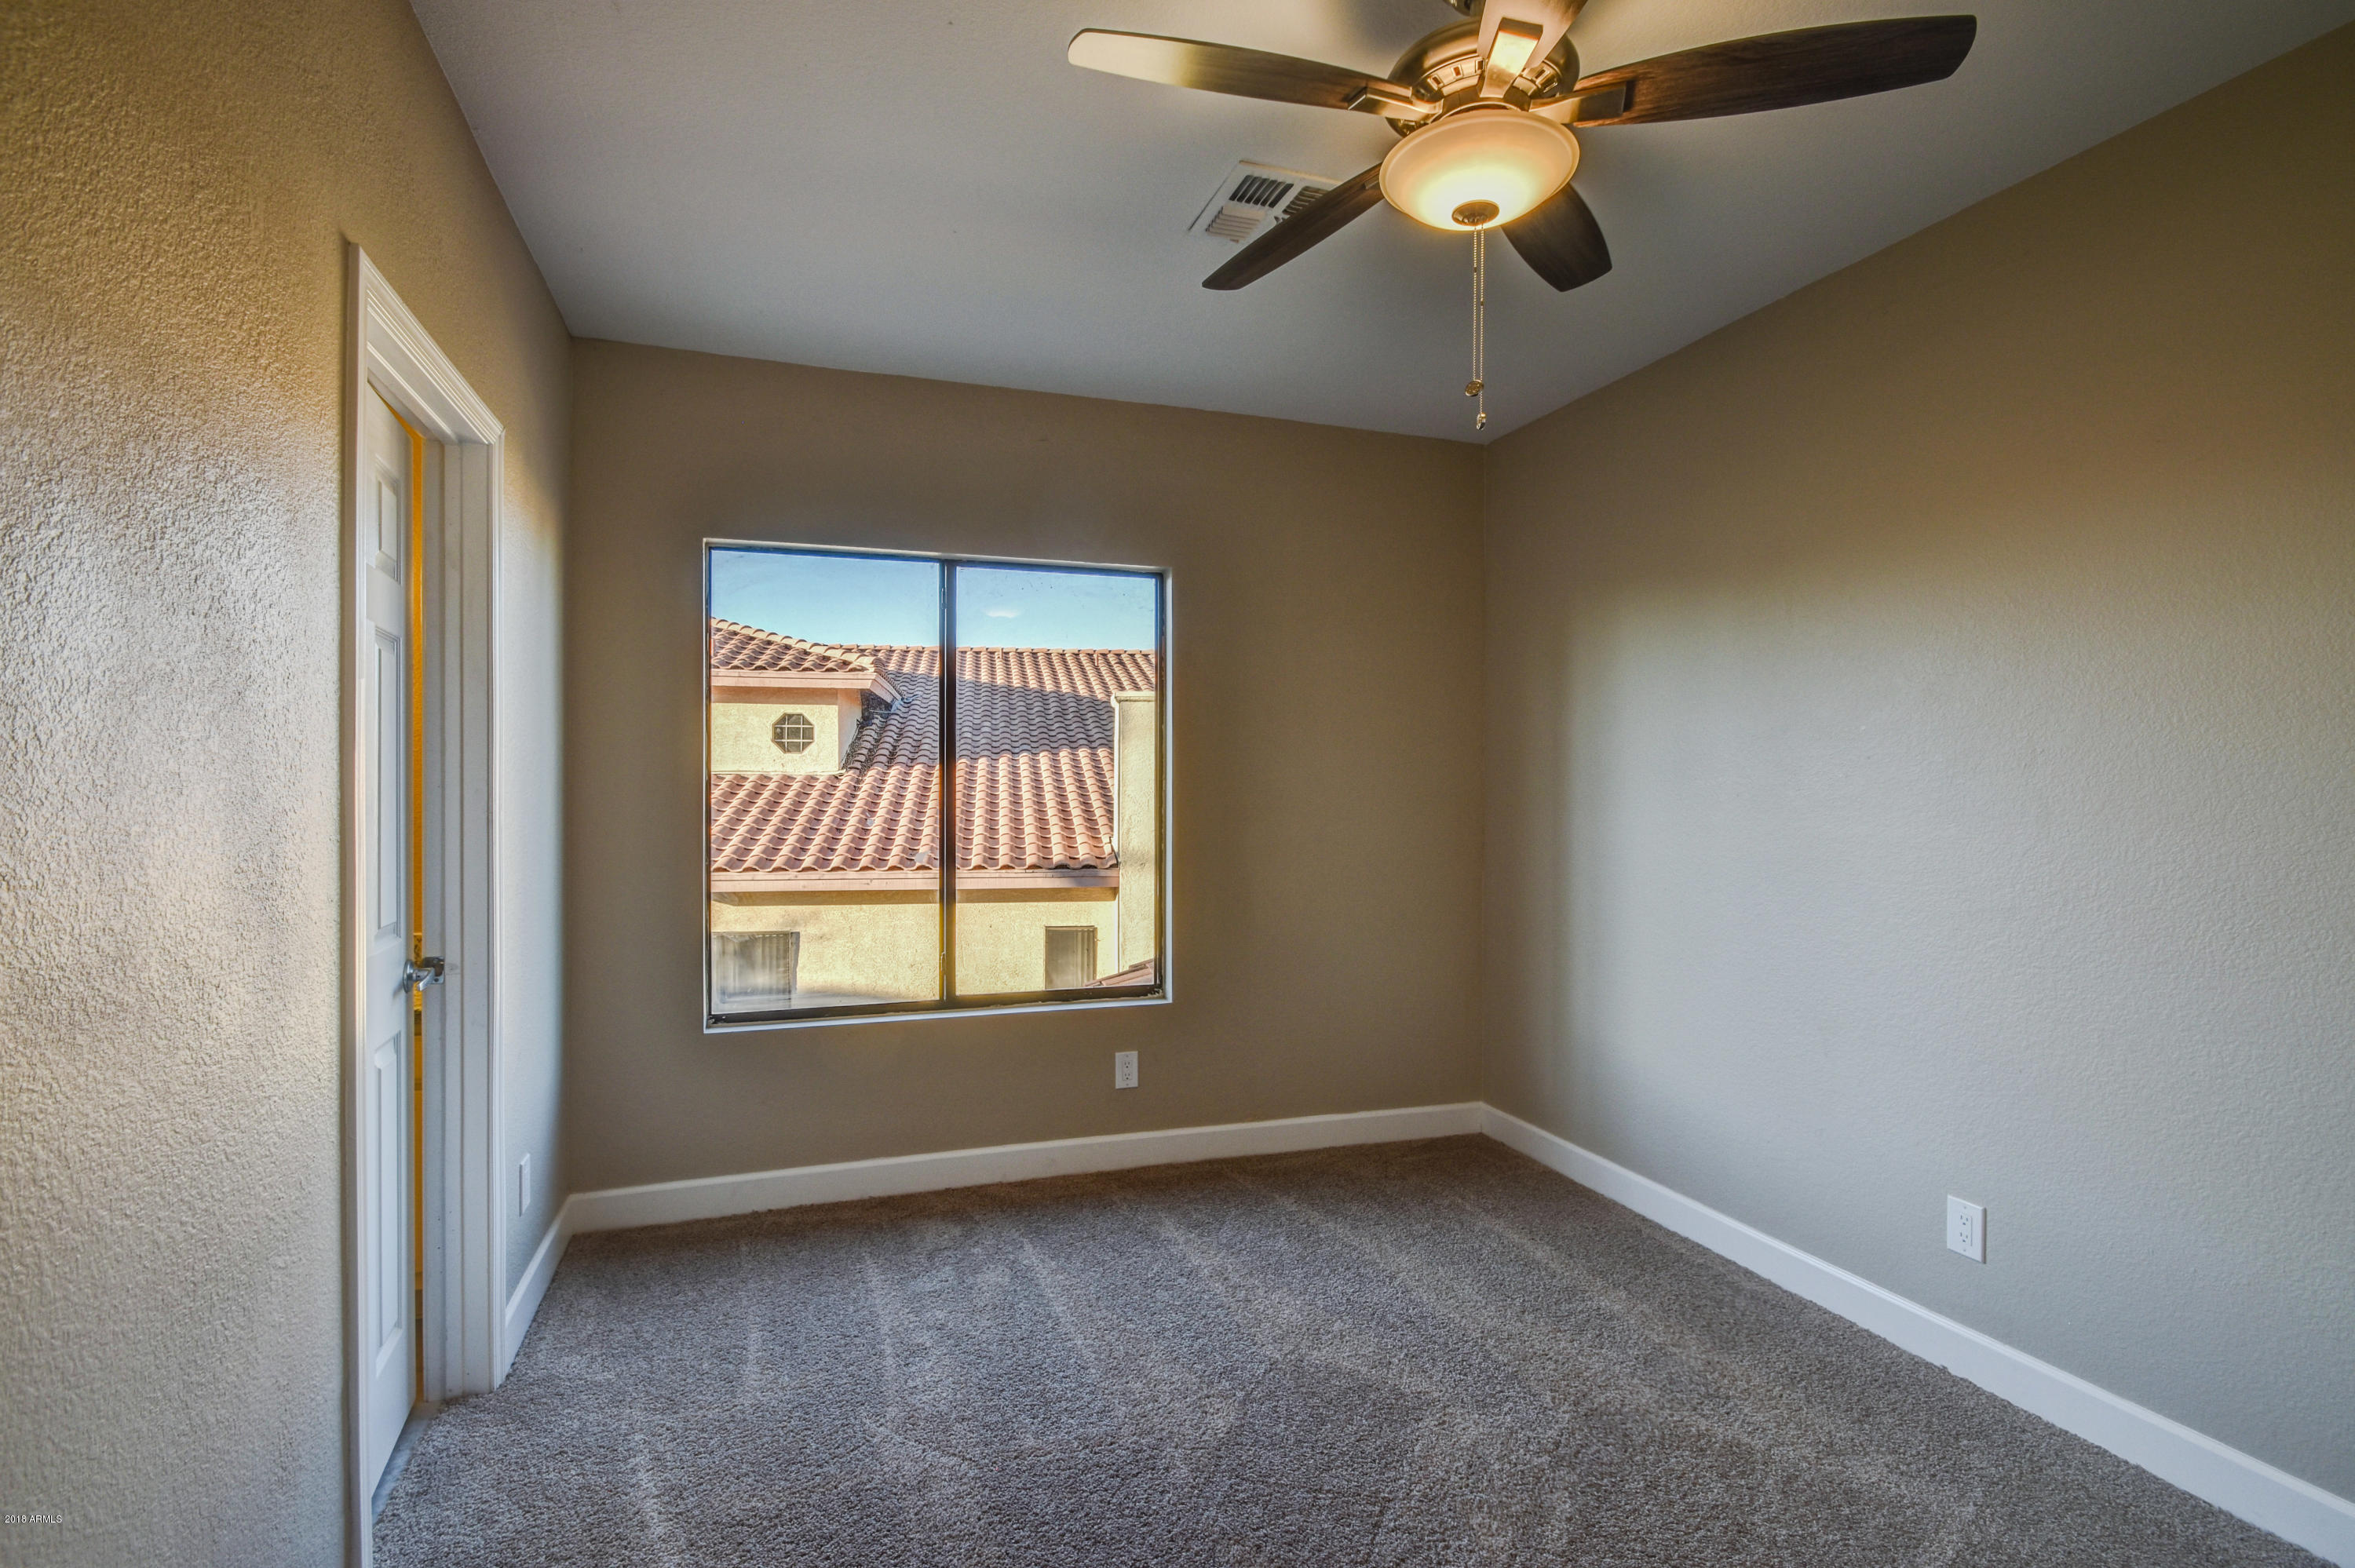 3602 N 109TH Drive, Avondale, AZ 85392 (MLS# 5812745) - Desert Ridge ...